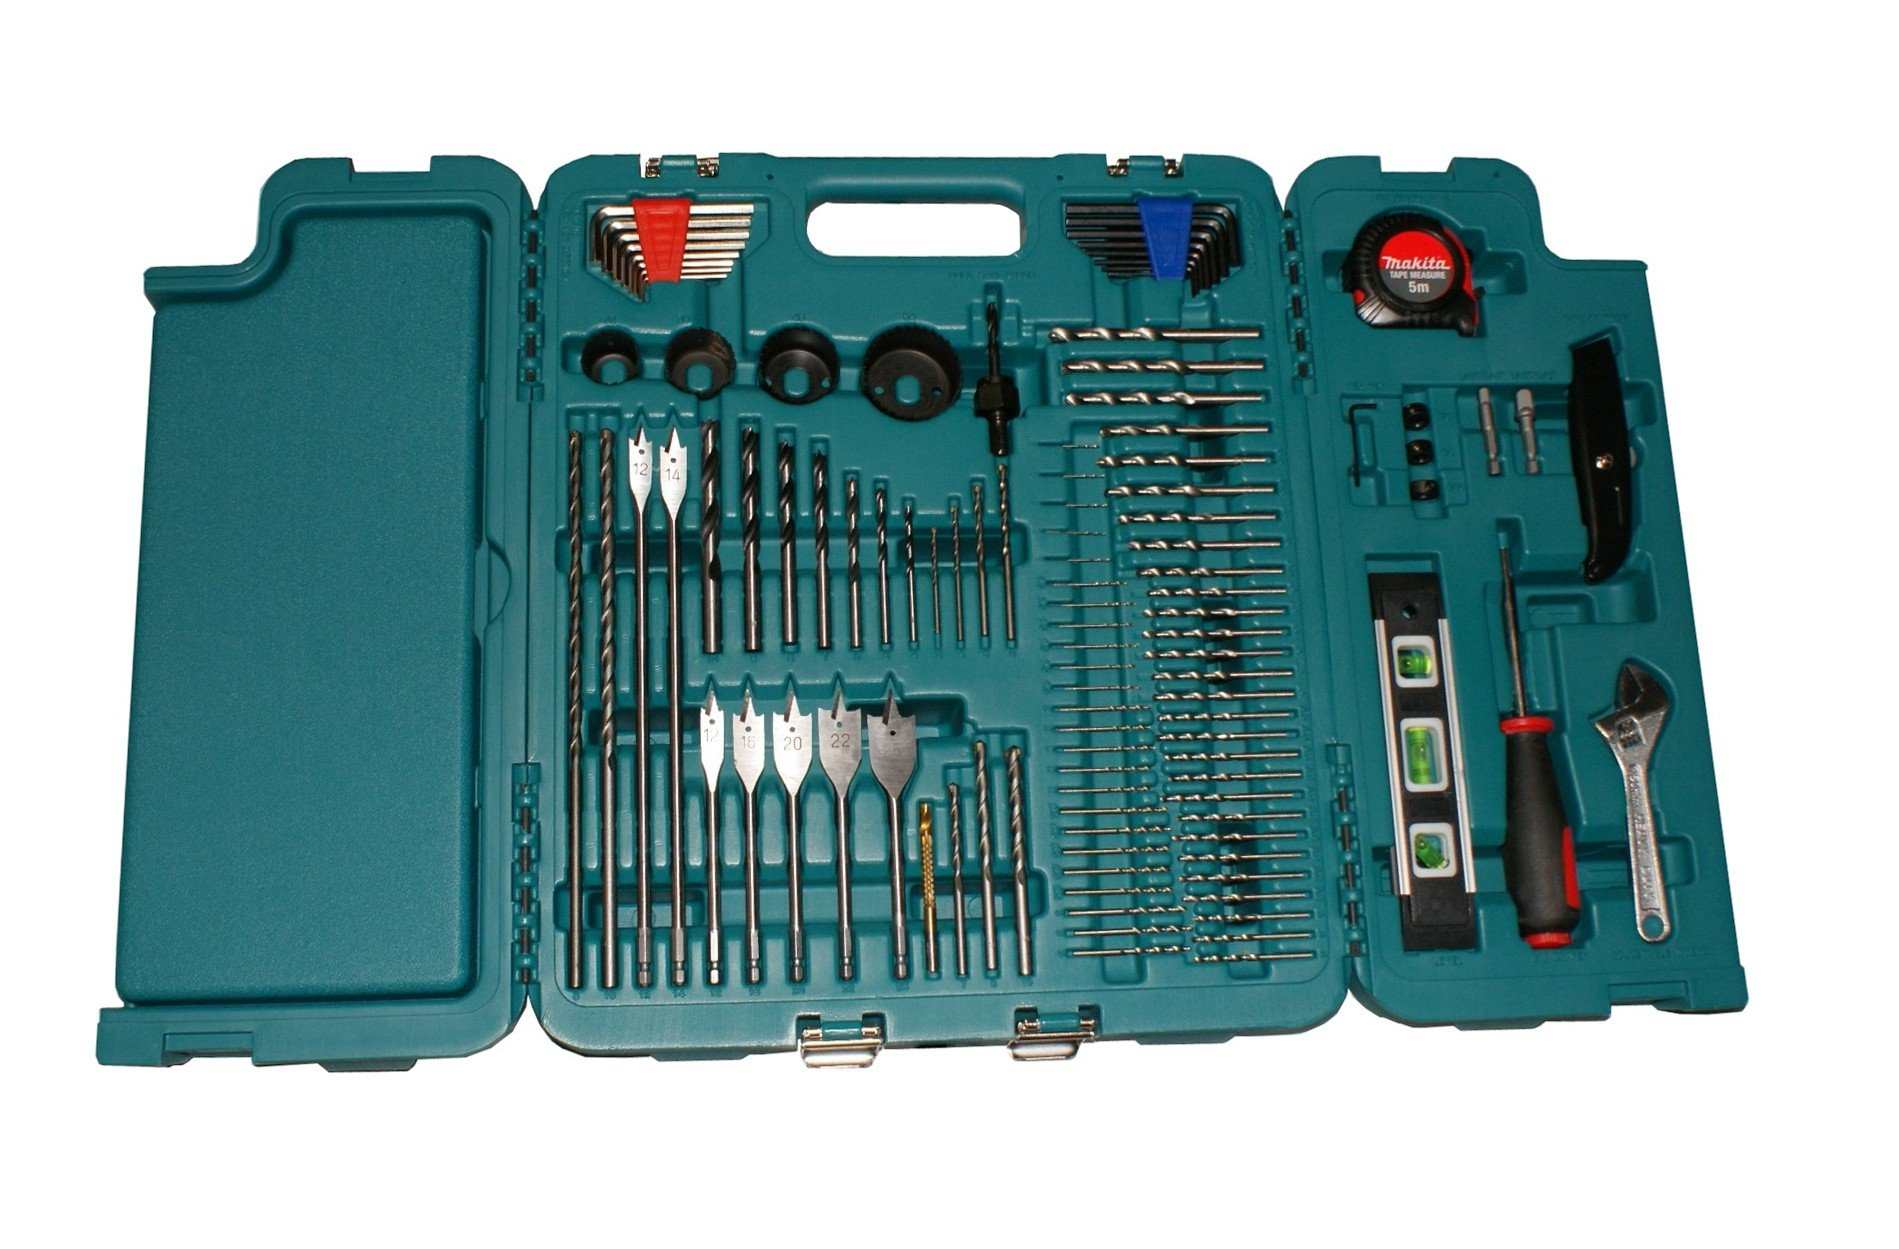 MAKITA 252 PIECE ACCESSORY KIT IN BLOW MOULDED CASE SCREWDRIVER, DRILLBITS GREAT FOR BUILDERS,TRADE,DIY by Makita (Image #3)